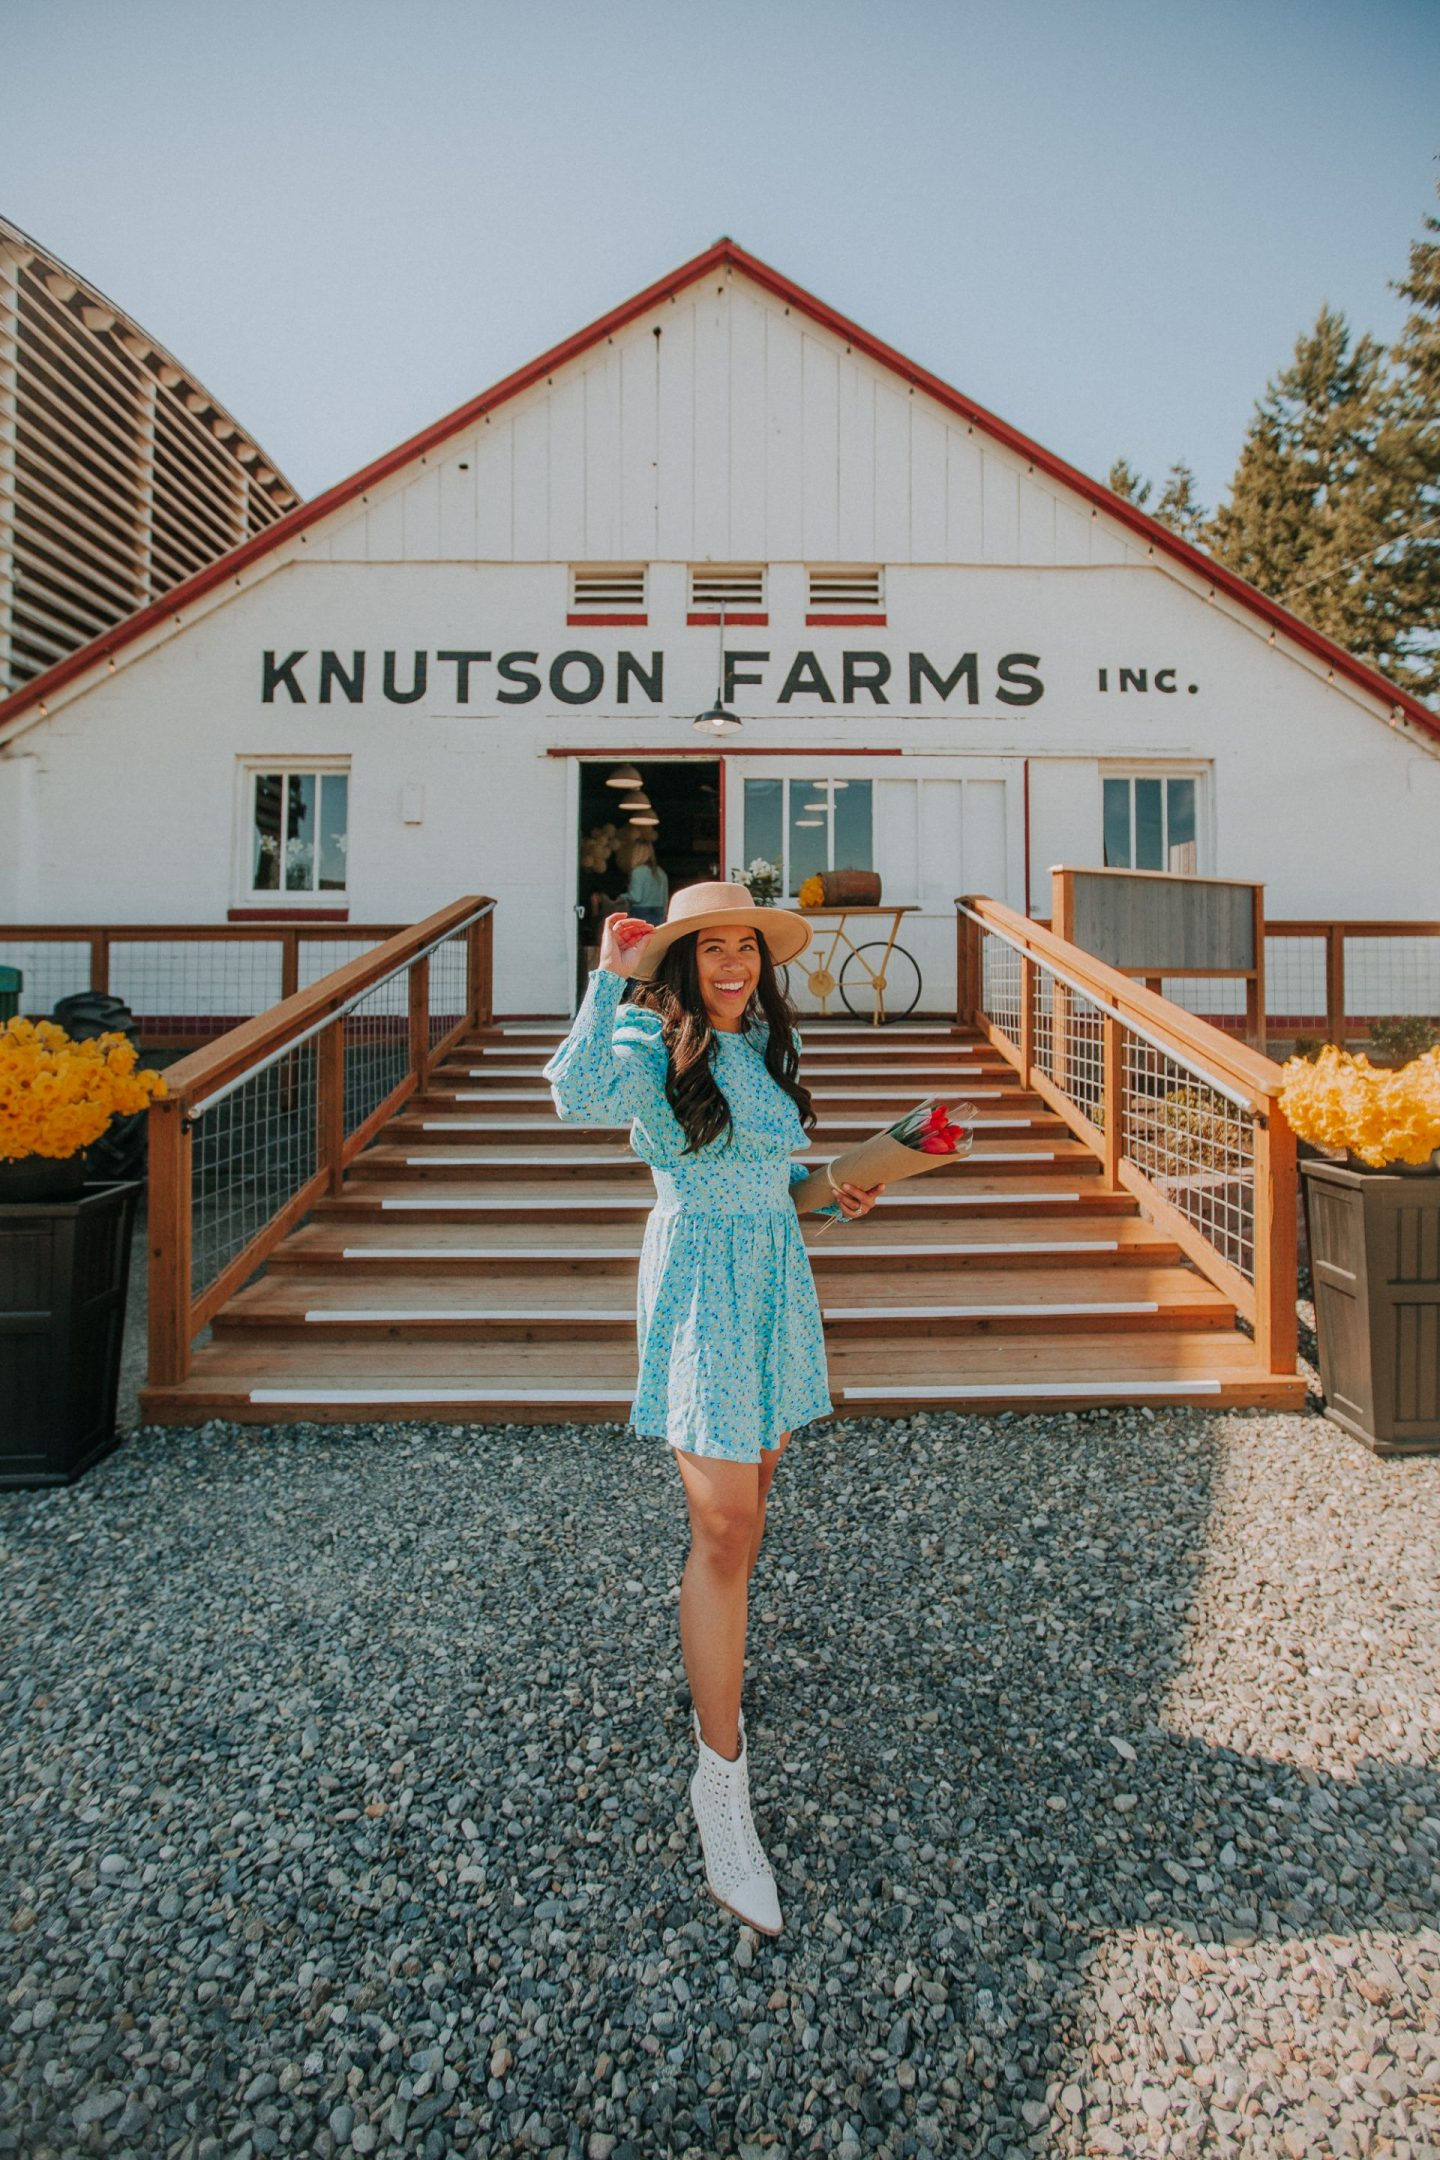 Knutson Farms - Sumner, WA - Emma's Edition - Spring outfit ideas for women